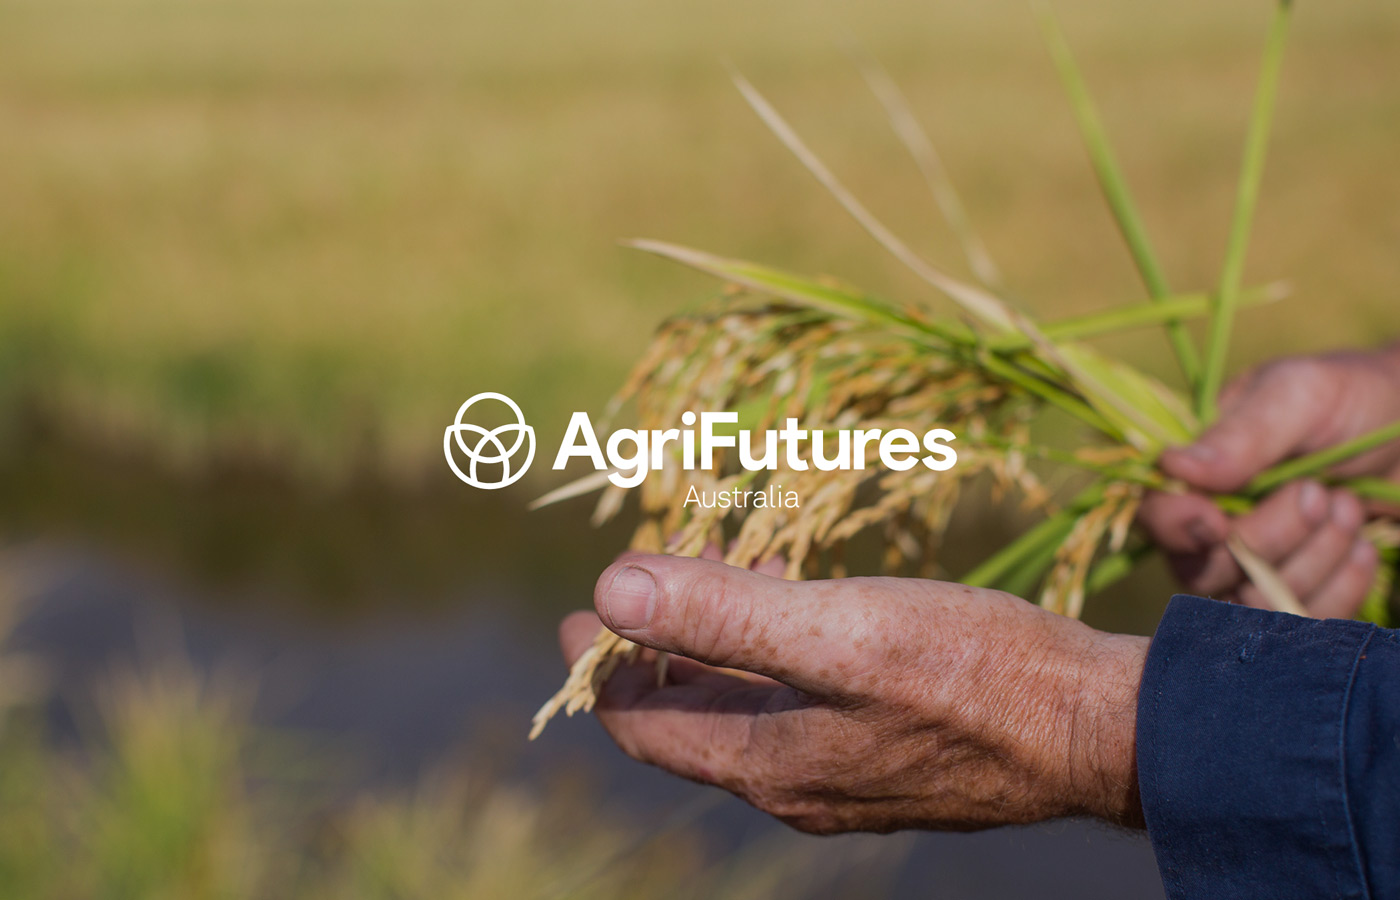 AgriFutures Brand Development